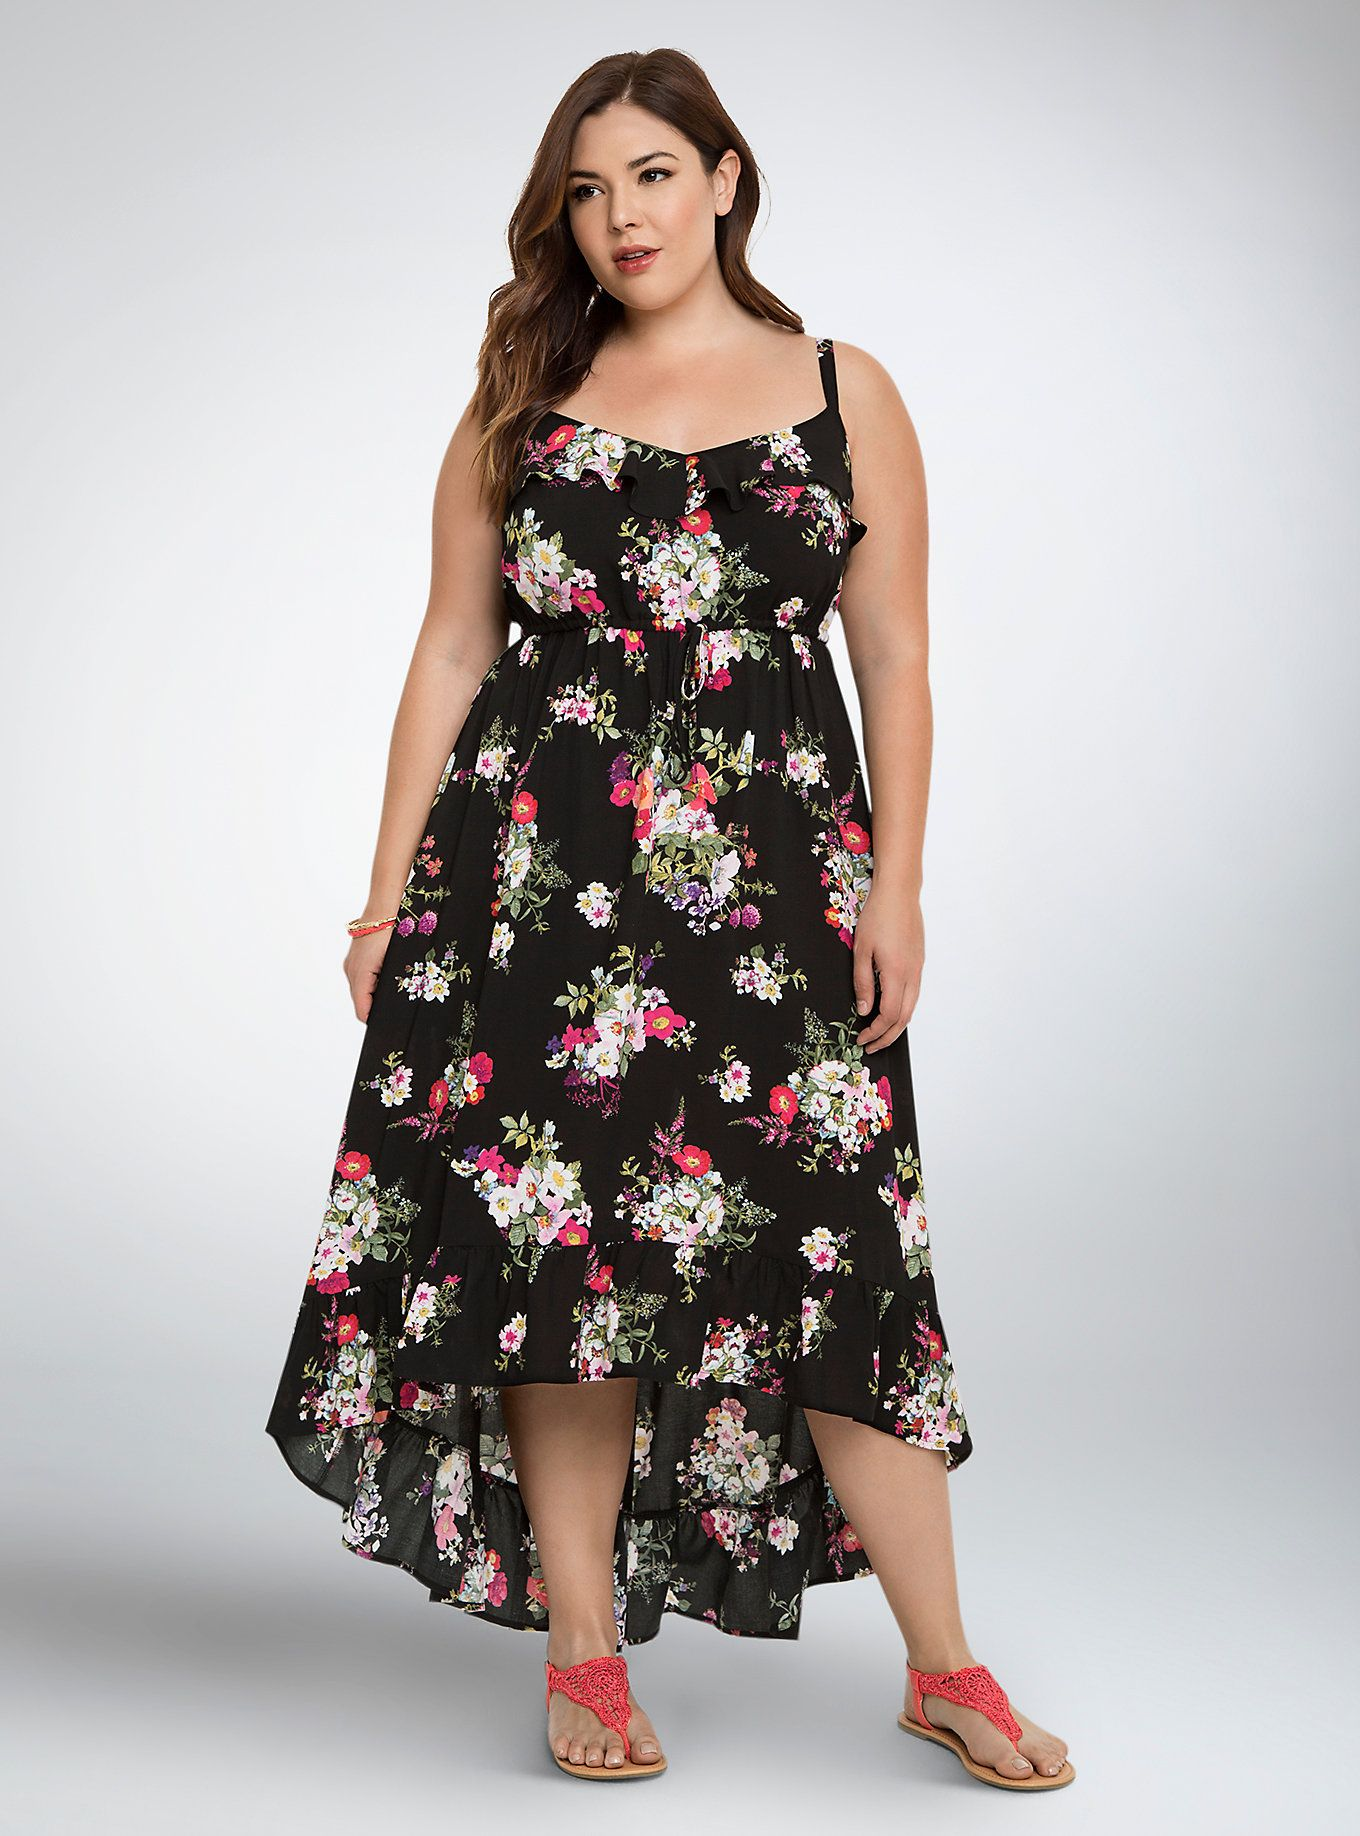 One size maxi dresses